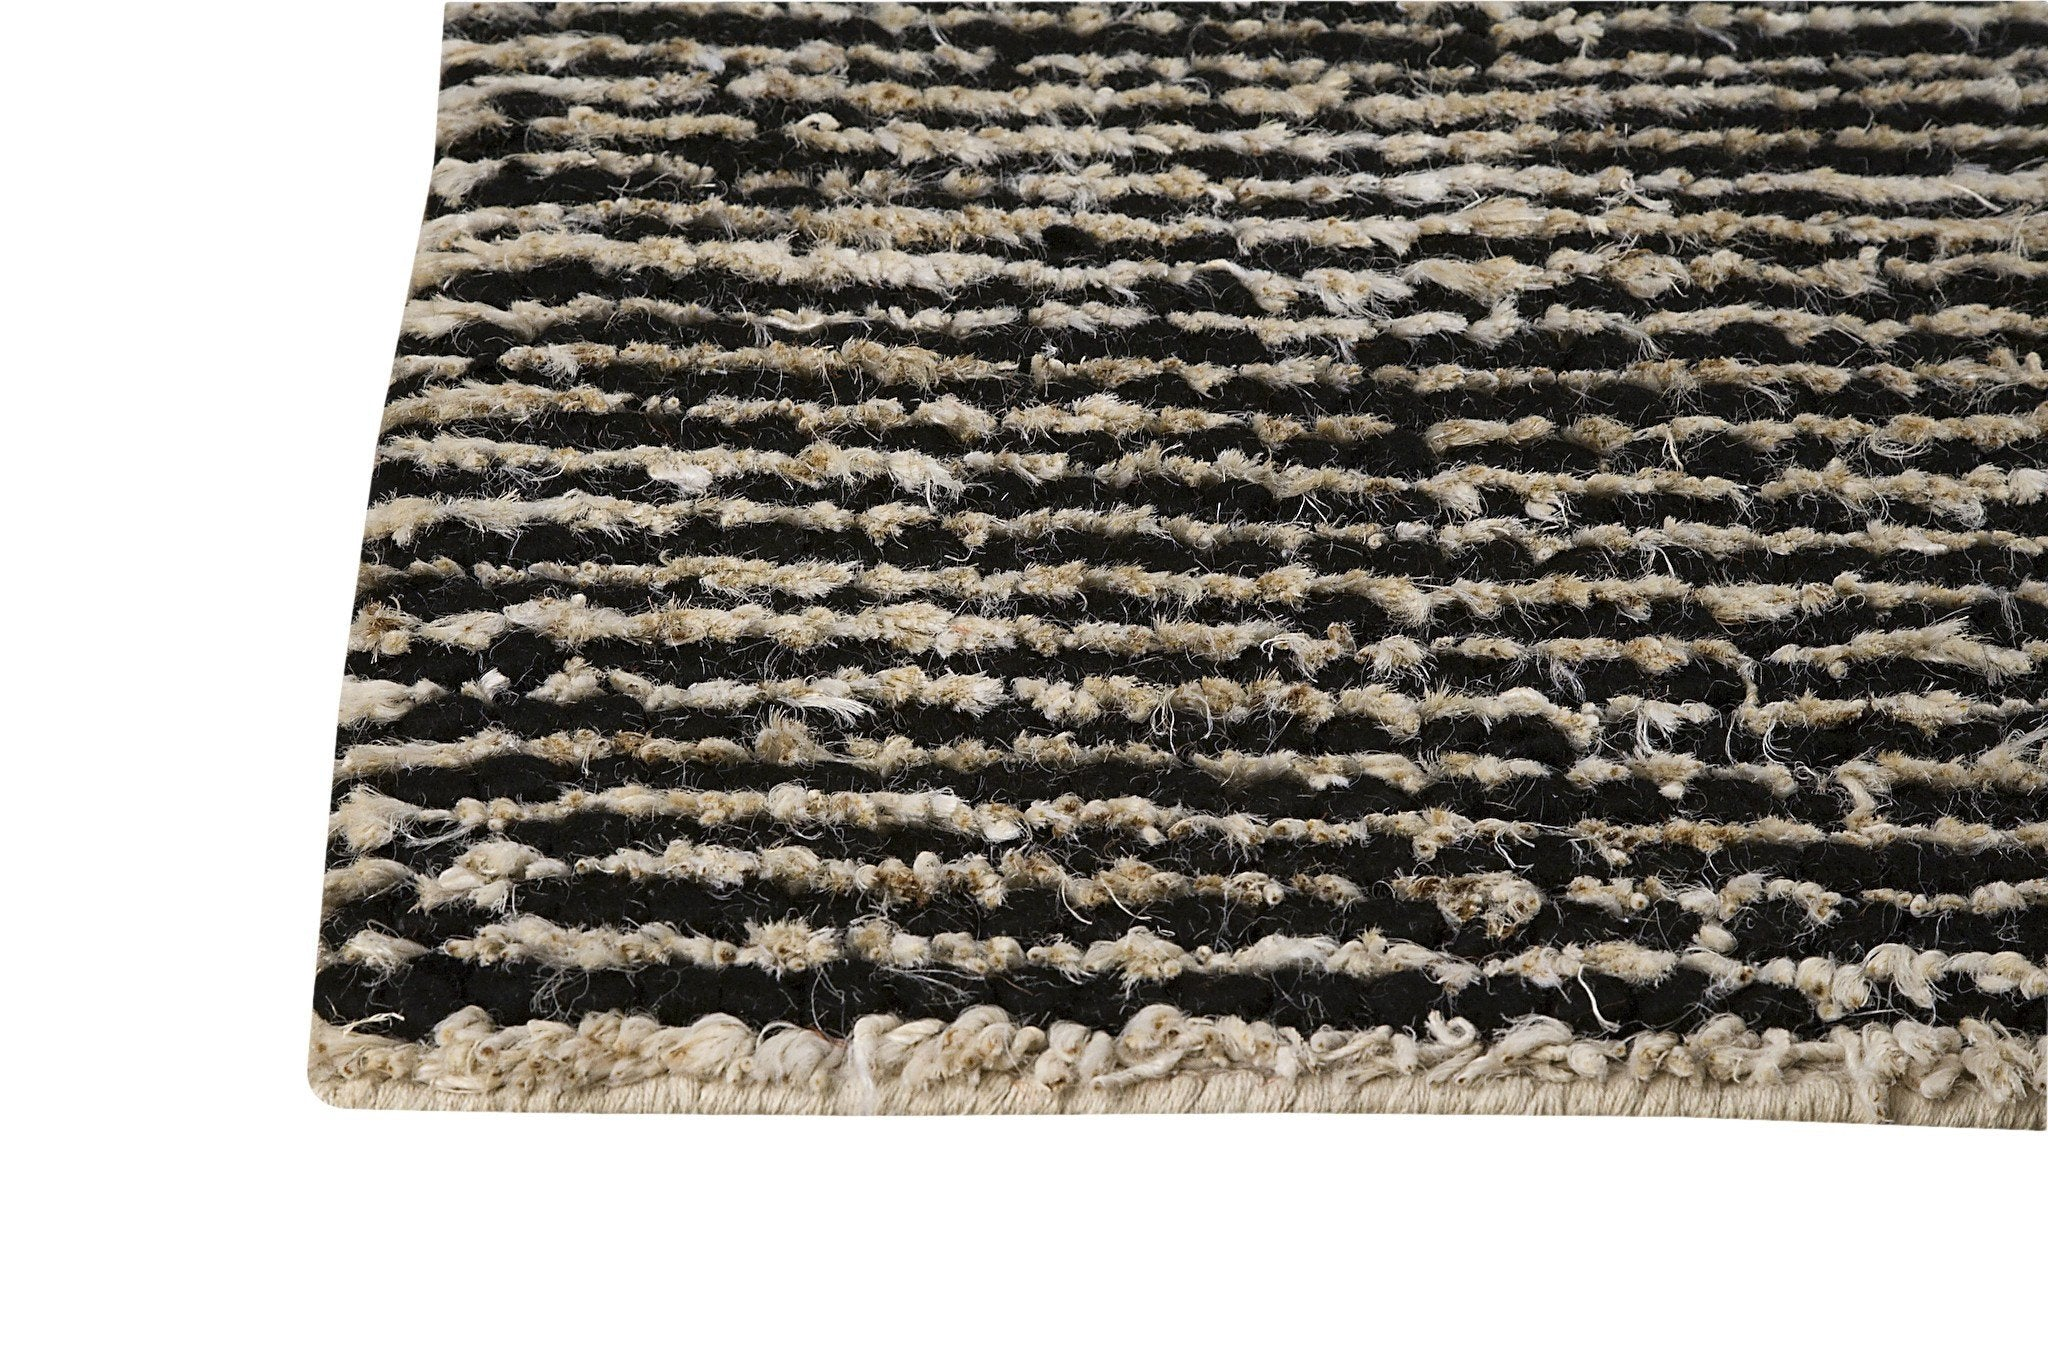 Picture of: Nature Collection Hand Woven Wool And Hemp Area Rug In Black And White Burke Decor